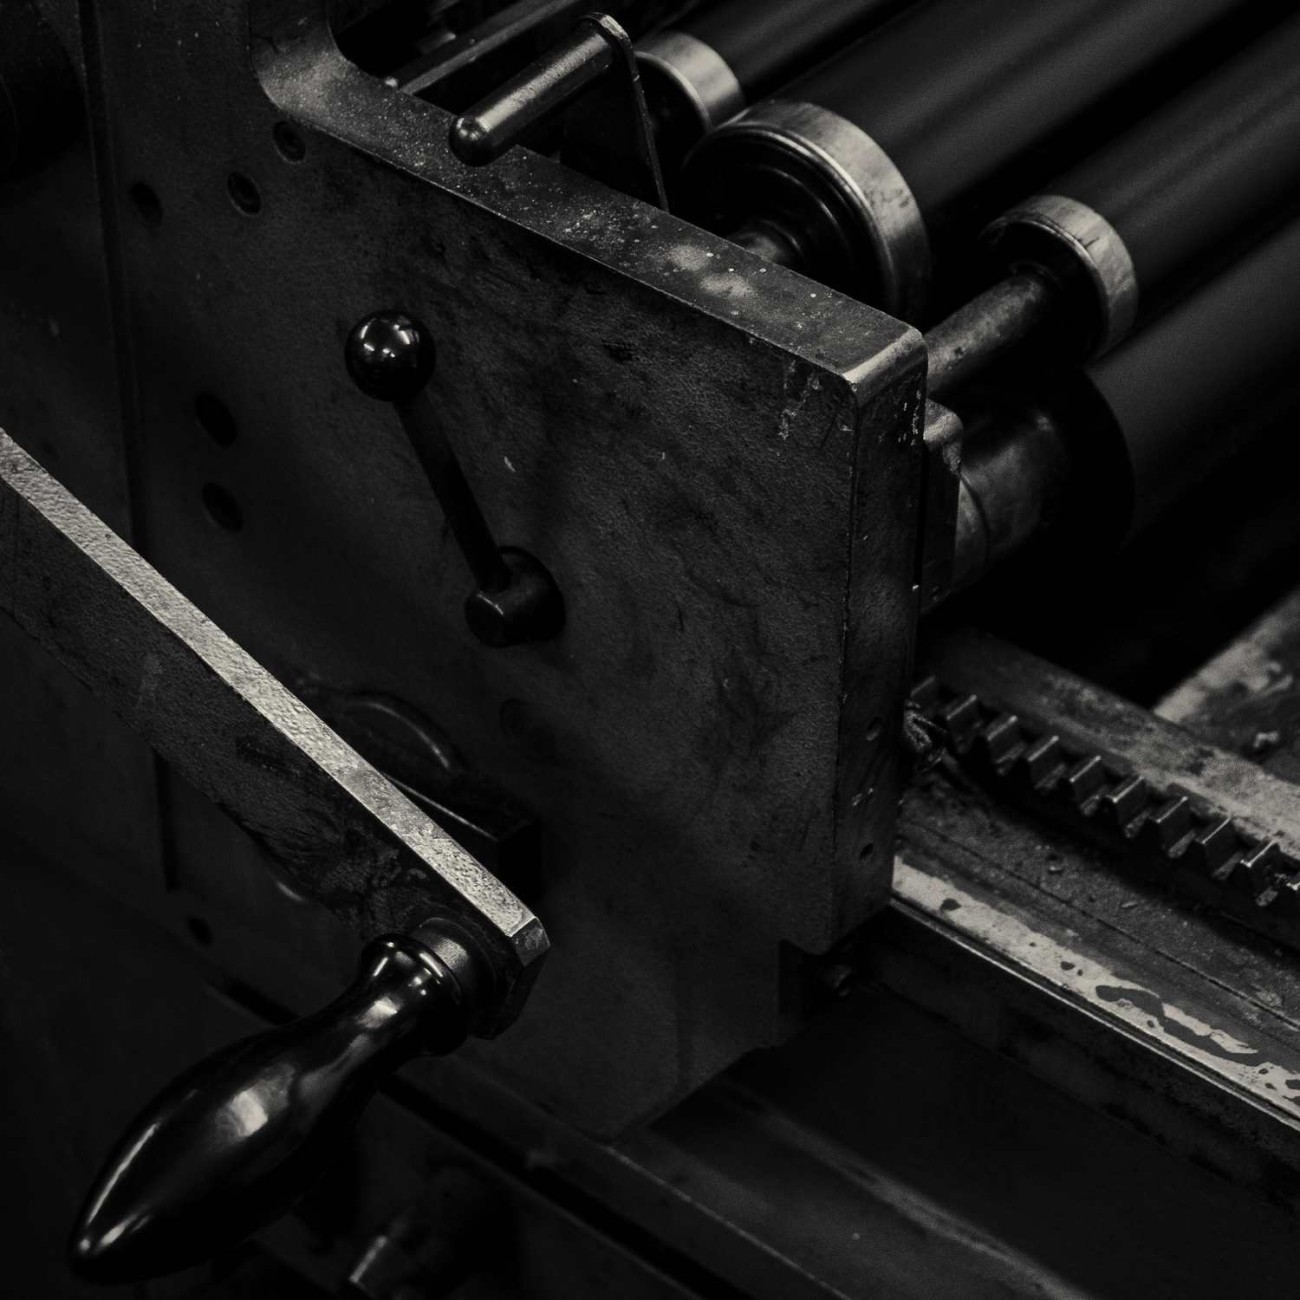 Printing press handle and rollers, England, 2010